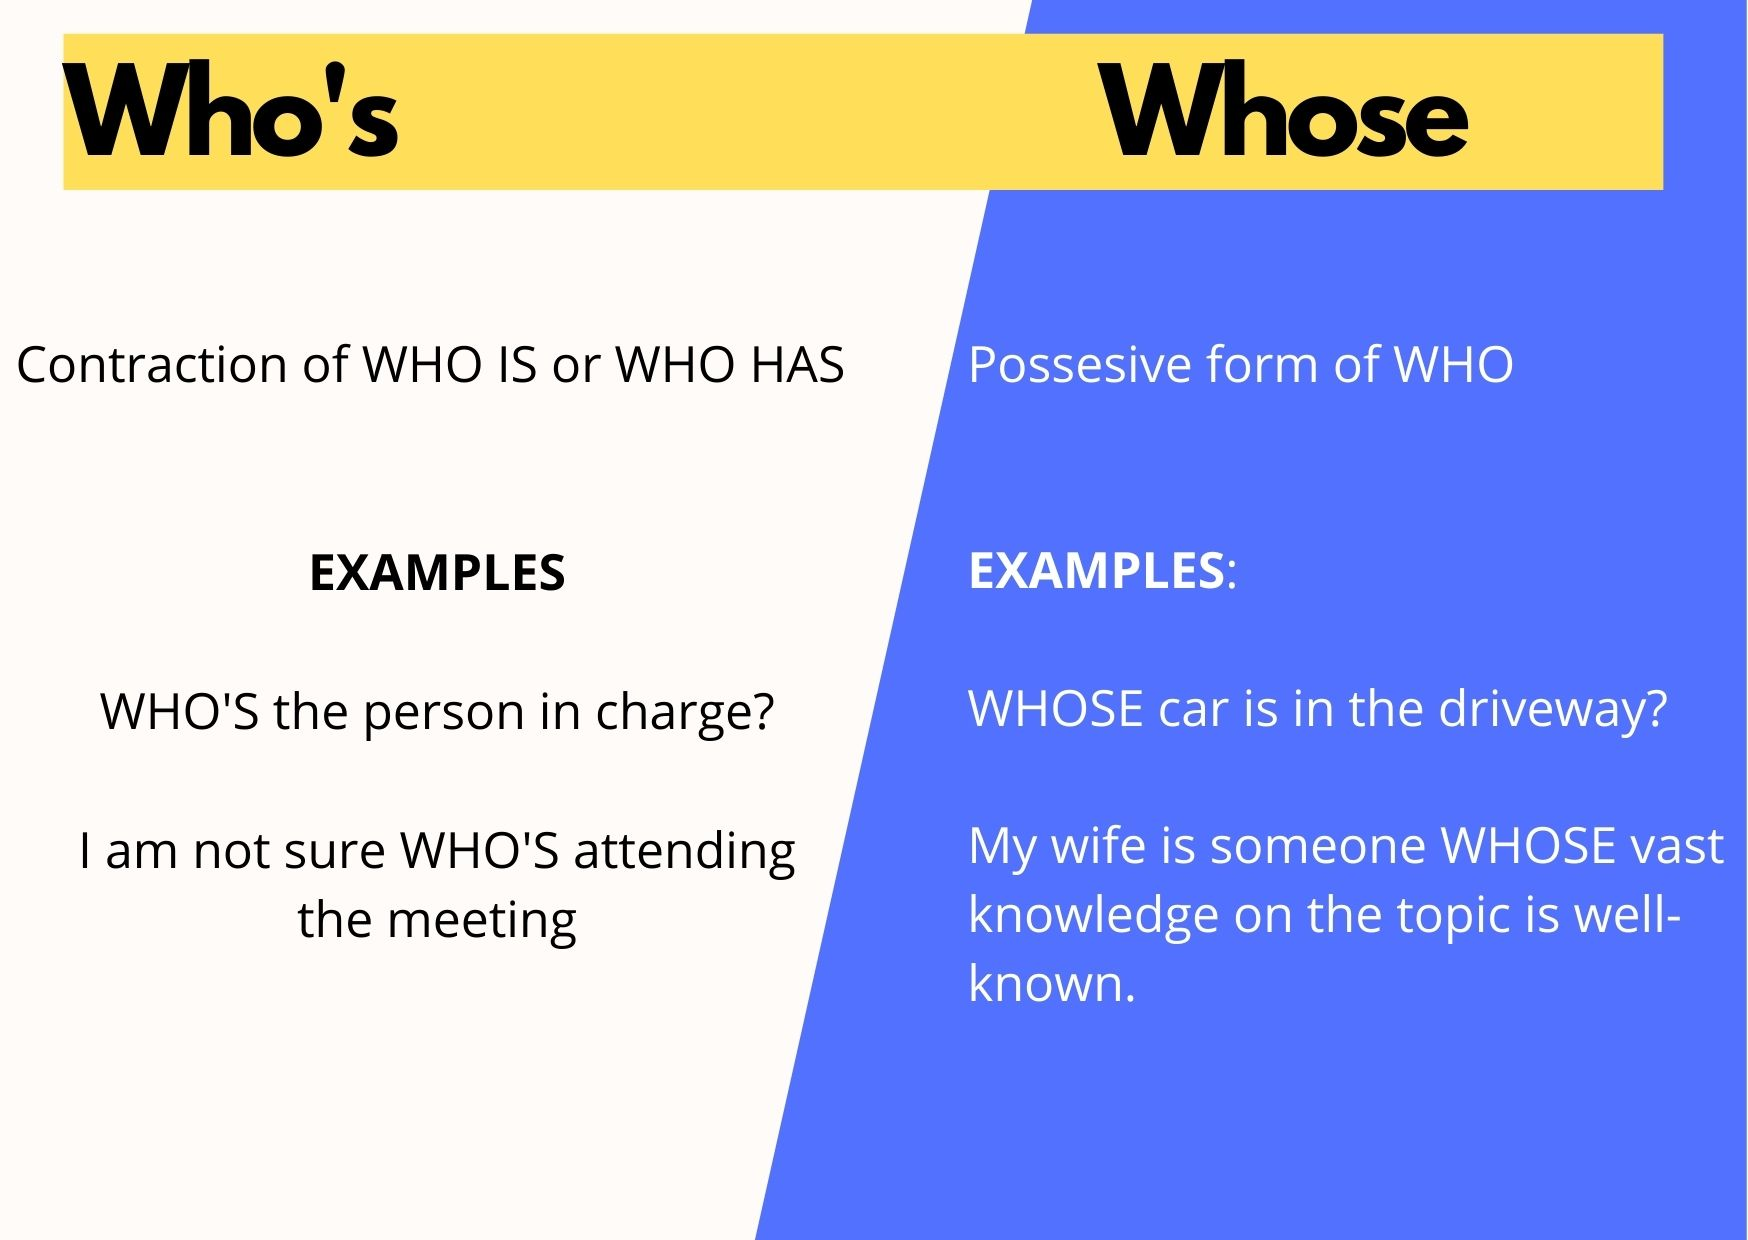 Examples of difference between whose and who's along with explanation that states that Who's is contraction of Who IS or Who HAS, while WHOSE is a possessive form of WHO